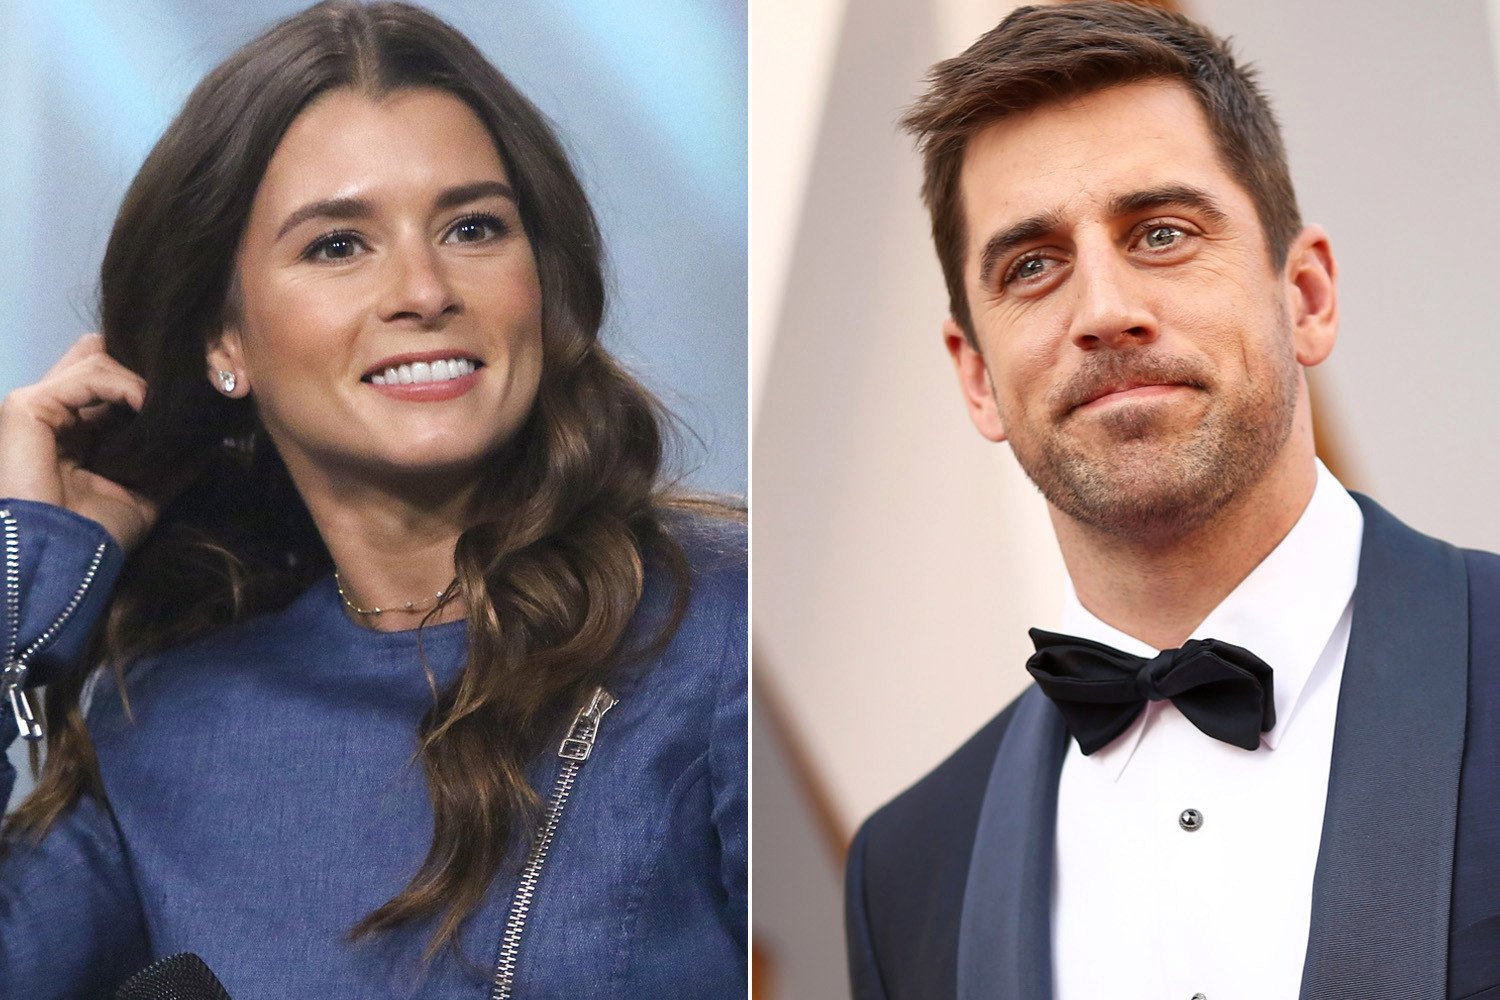 Danica Patrick can only smile about Aaron Rodgers romance rumors